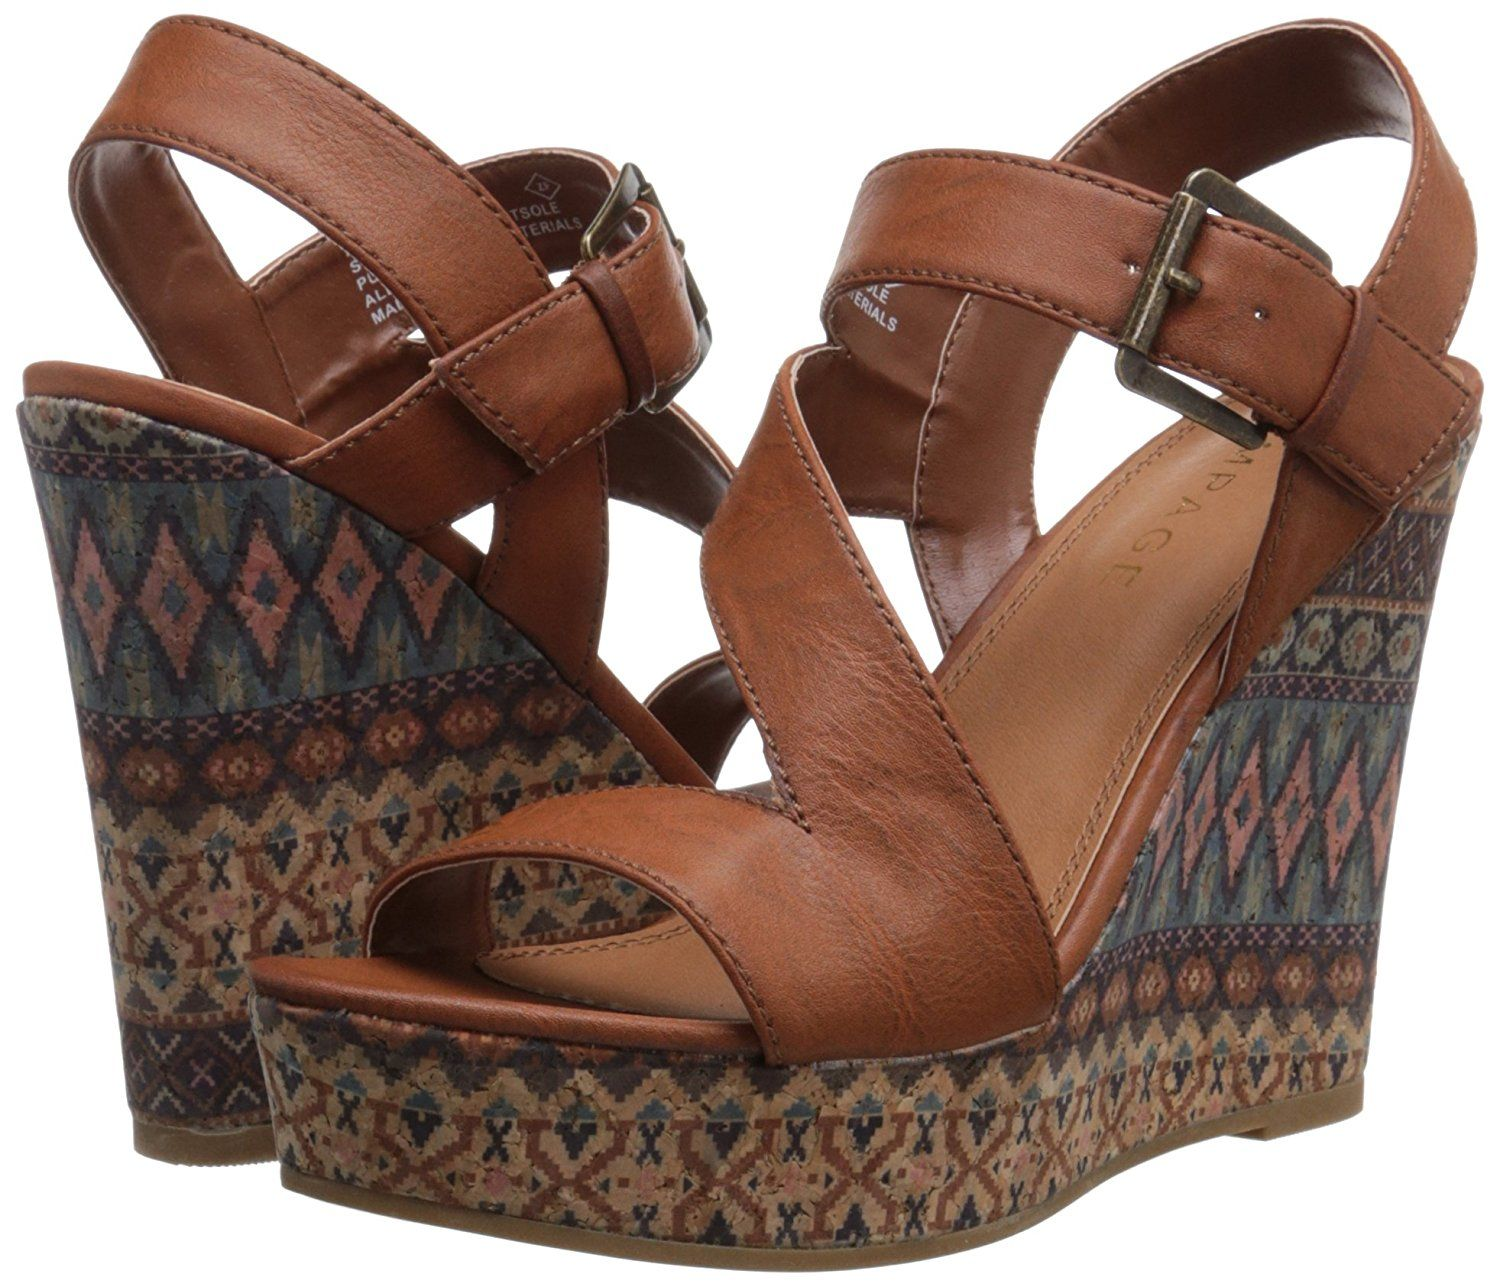 a7024b7368c Rampage Women s Heidi Platform Ankle Strap Open Back Wedge Sandal -- Want  to know more